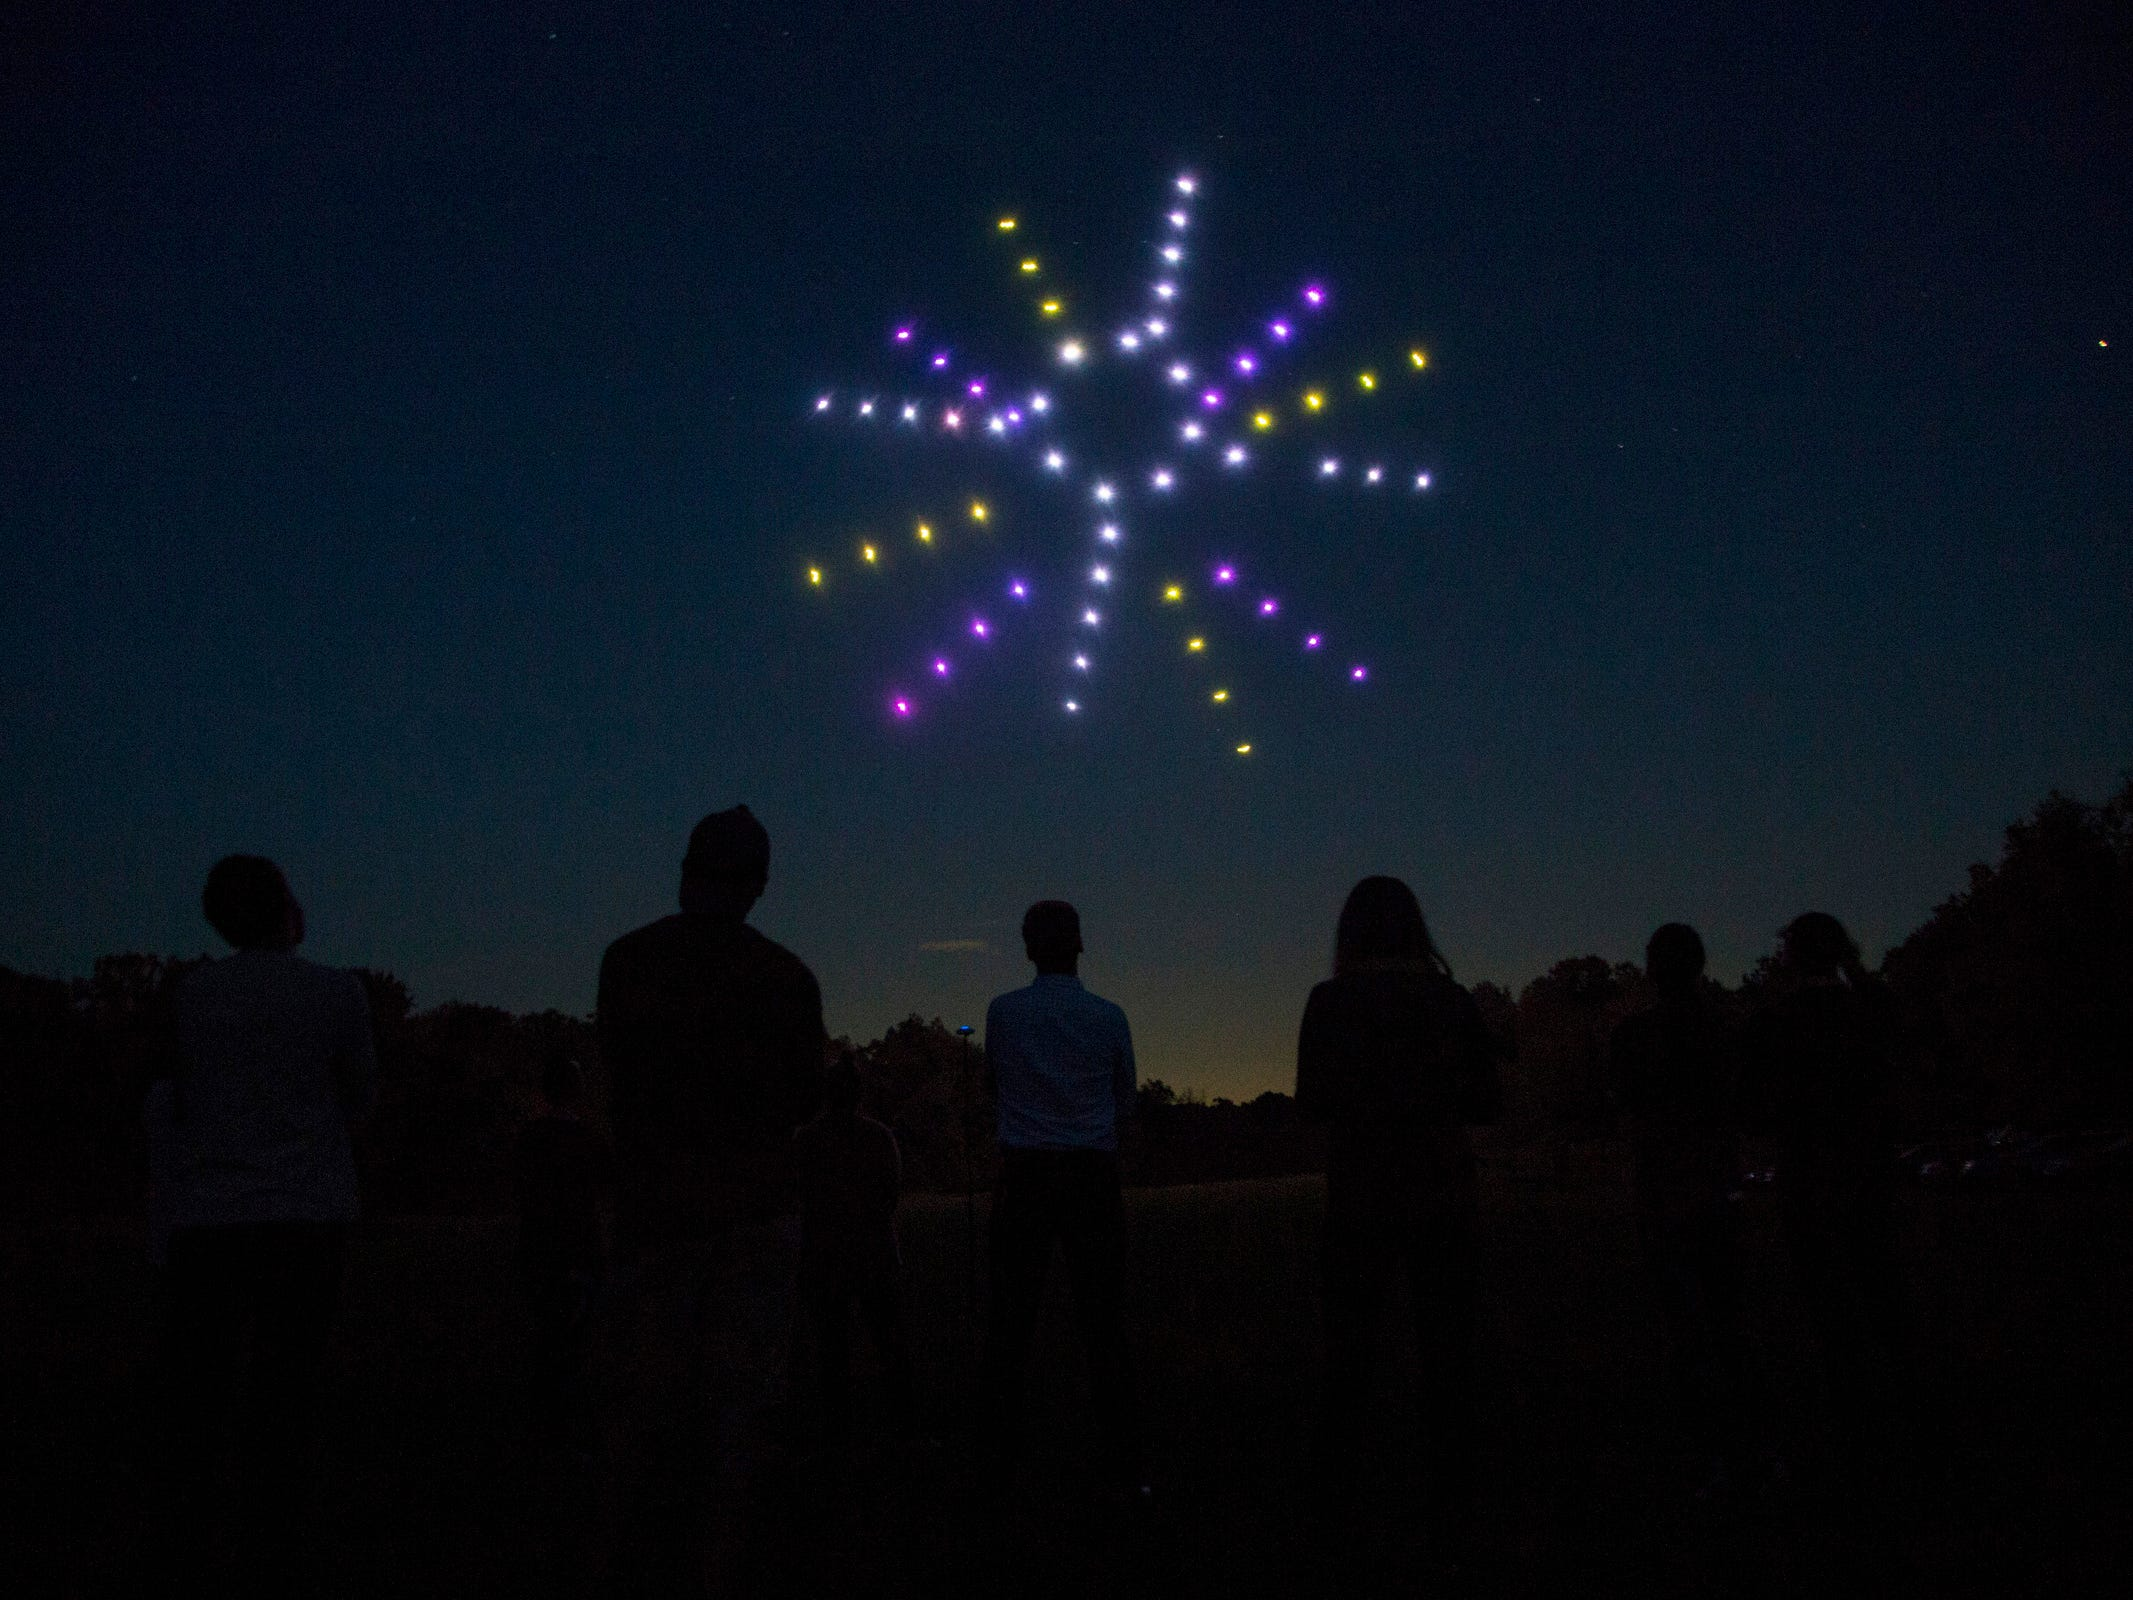 Firefly Drone Shows, a company out of Lake Orion uses multiple drones to swarm creating incredible evening light shows.